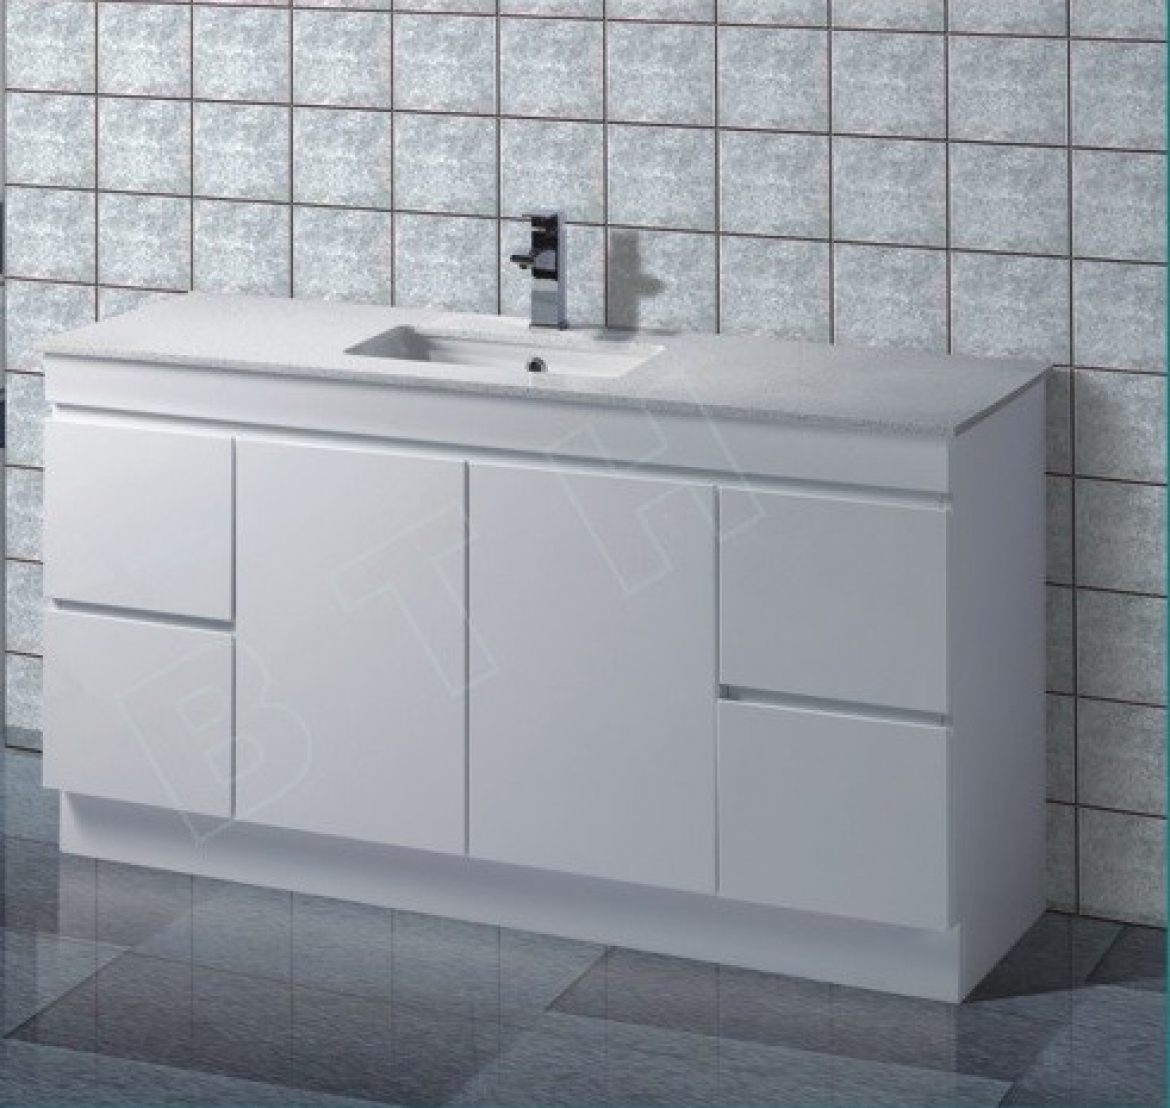 Bathroom stone top vanity [Single Basin-Floor mount]